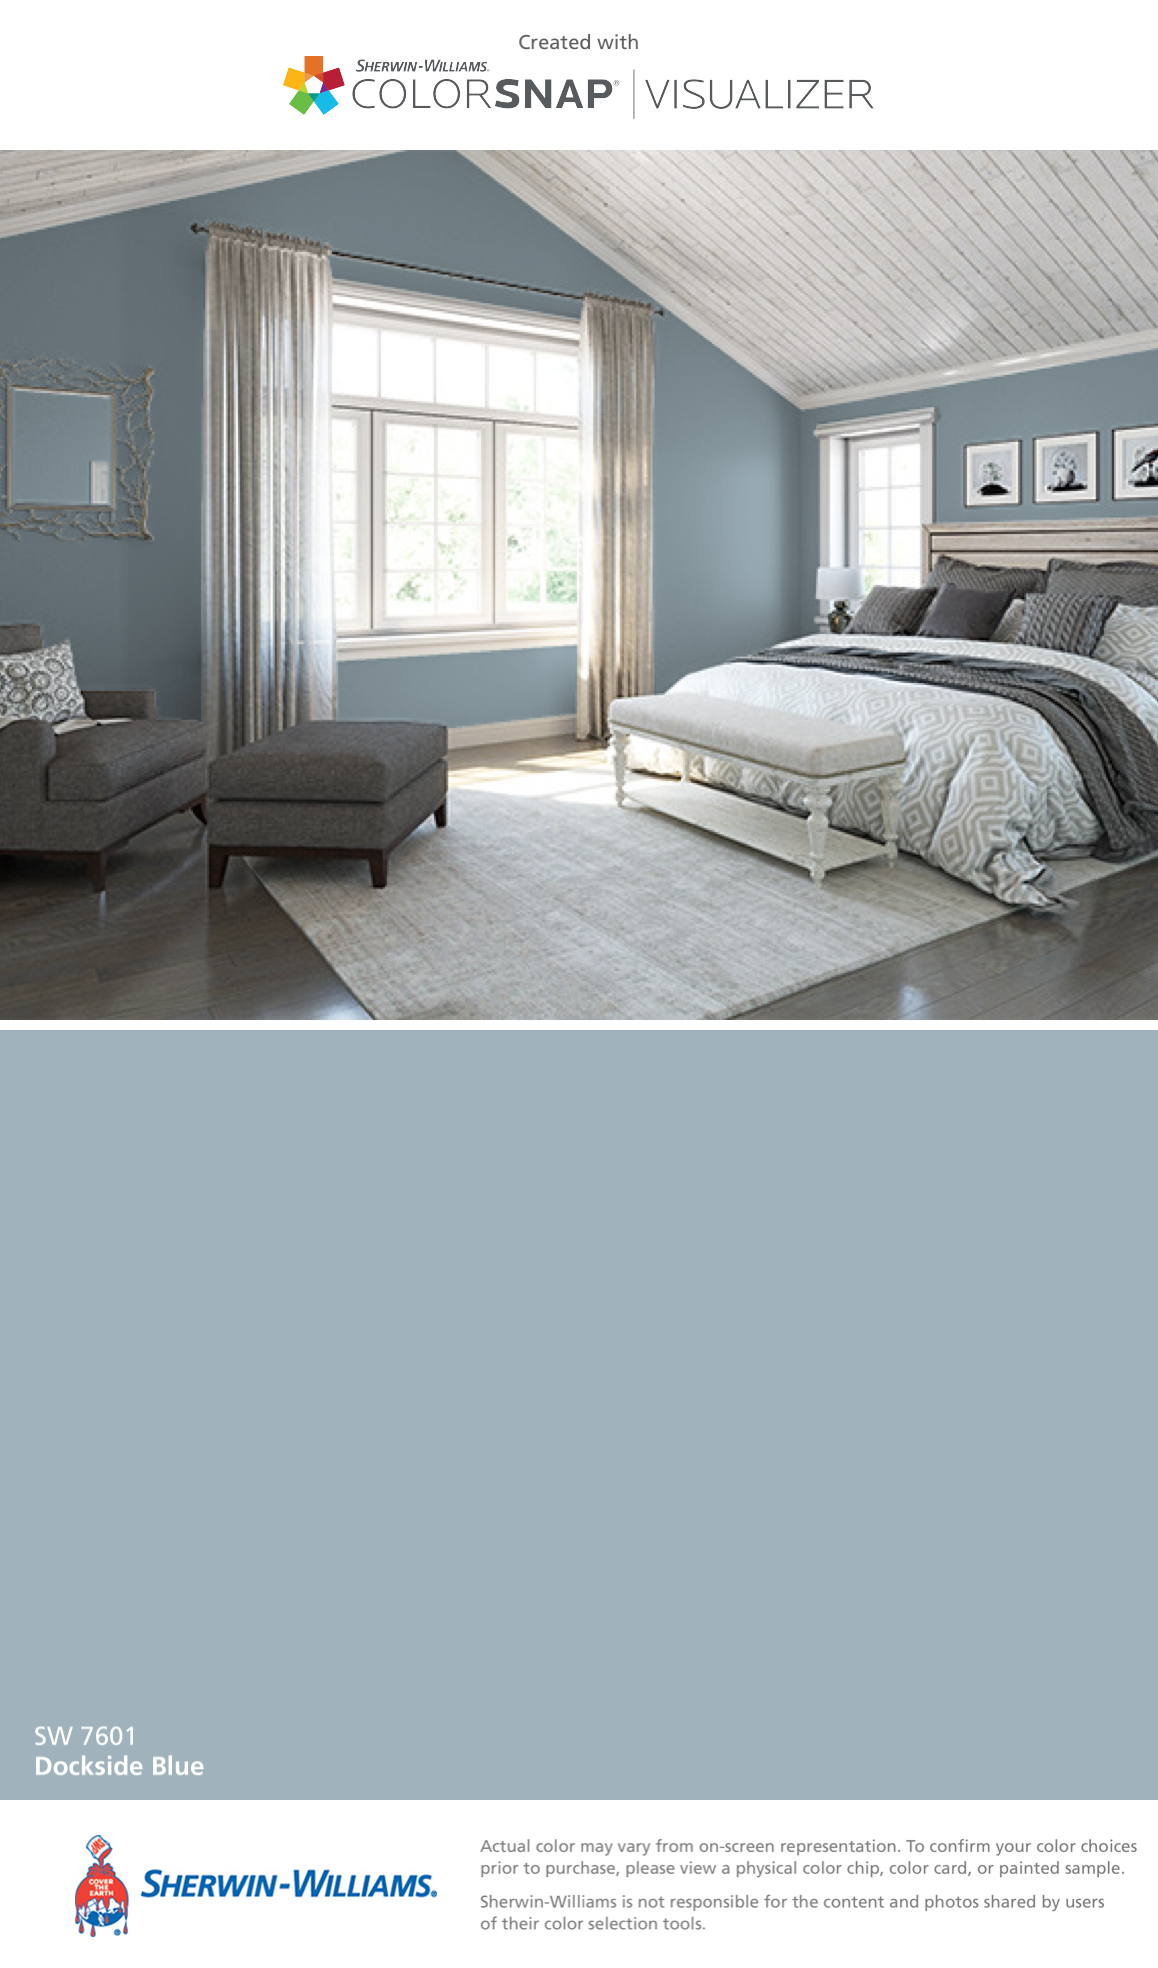 I Found This Color With Colorsnap Visualizer For Iphone By Sherwin Williams Dockside Blue Sw 7601 Bedroom Paint Colors Master Bedroom Paint Bedroom Colors